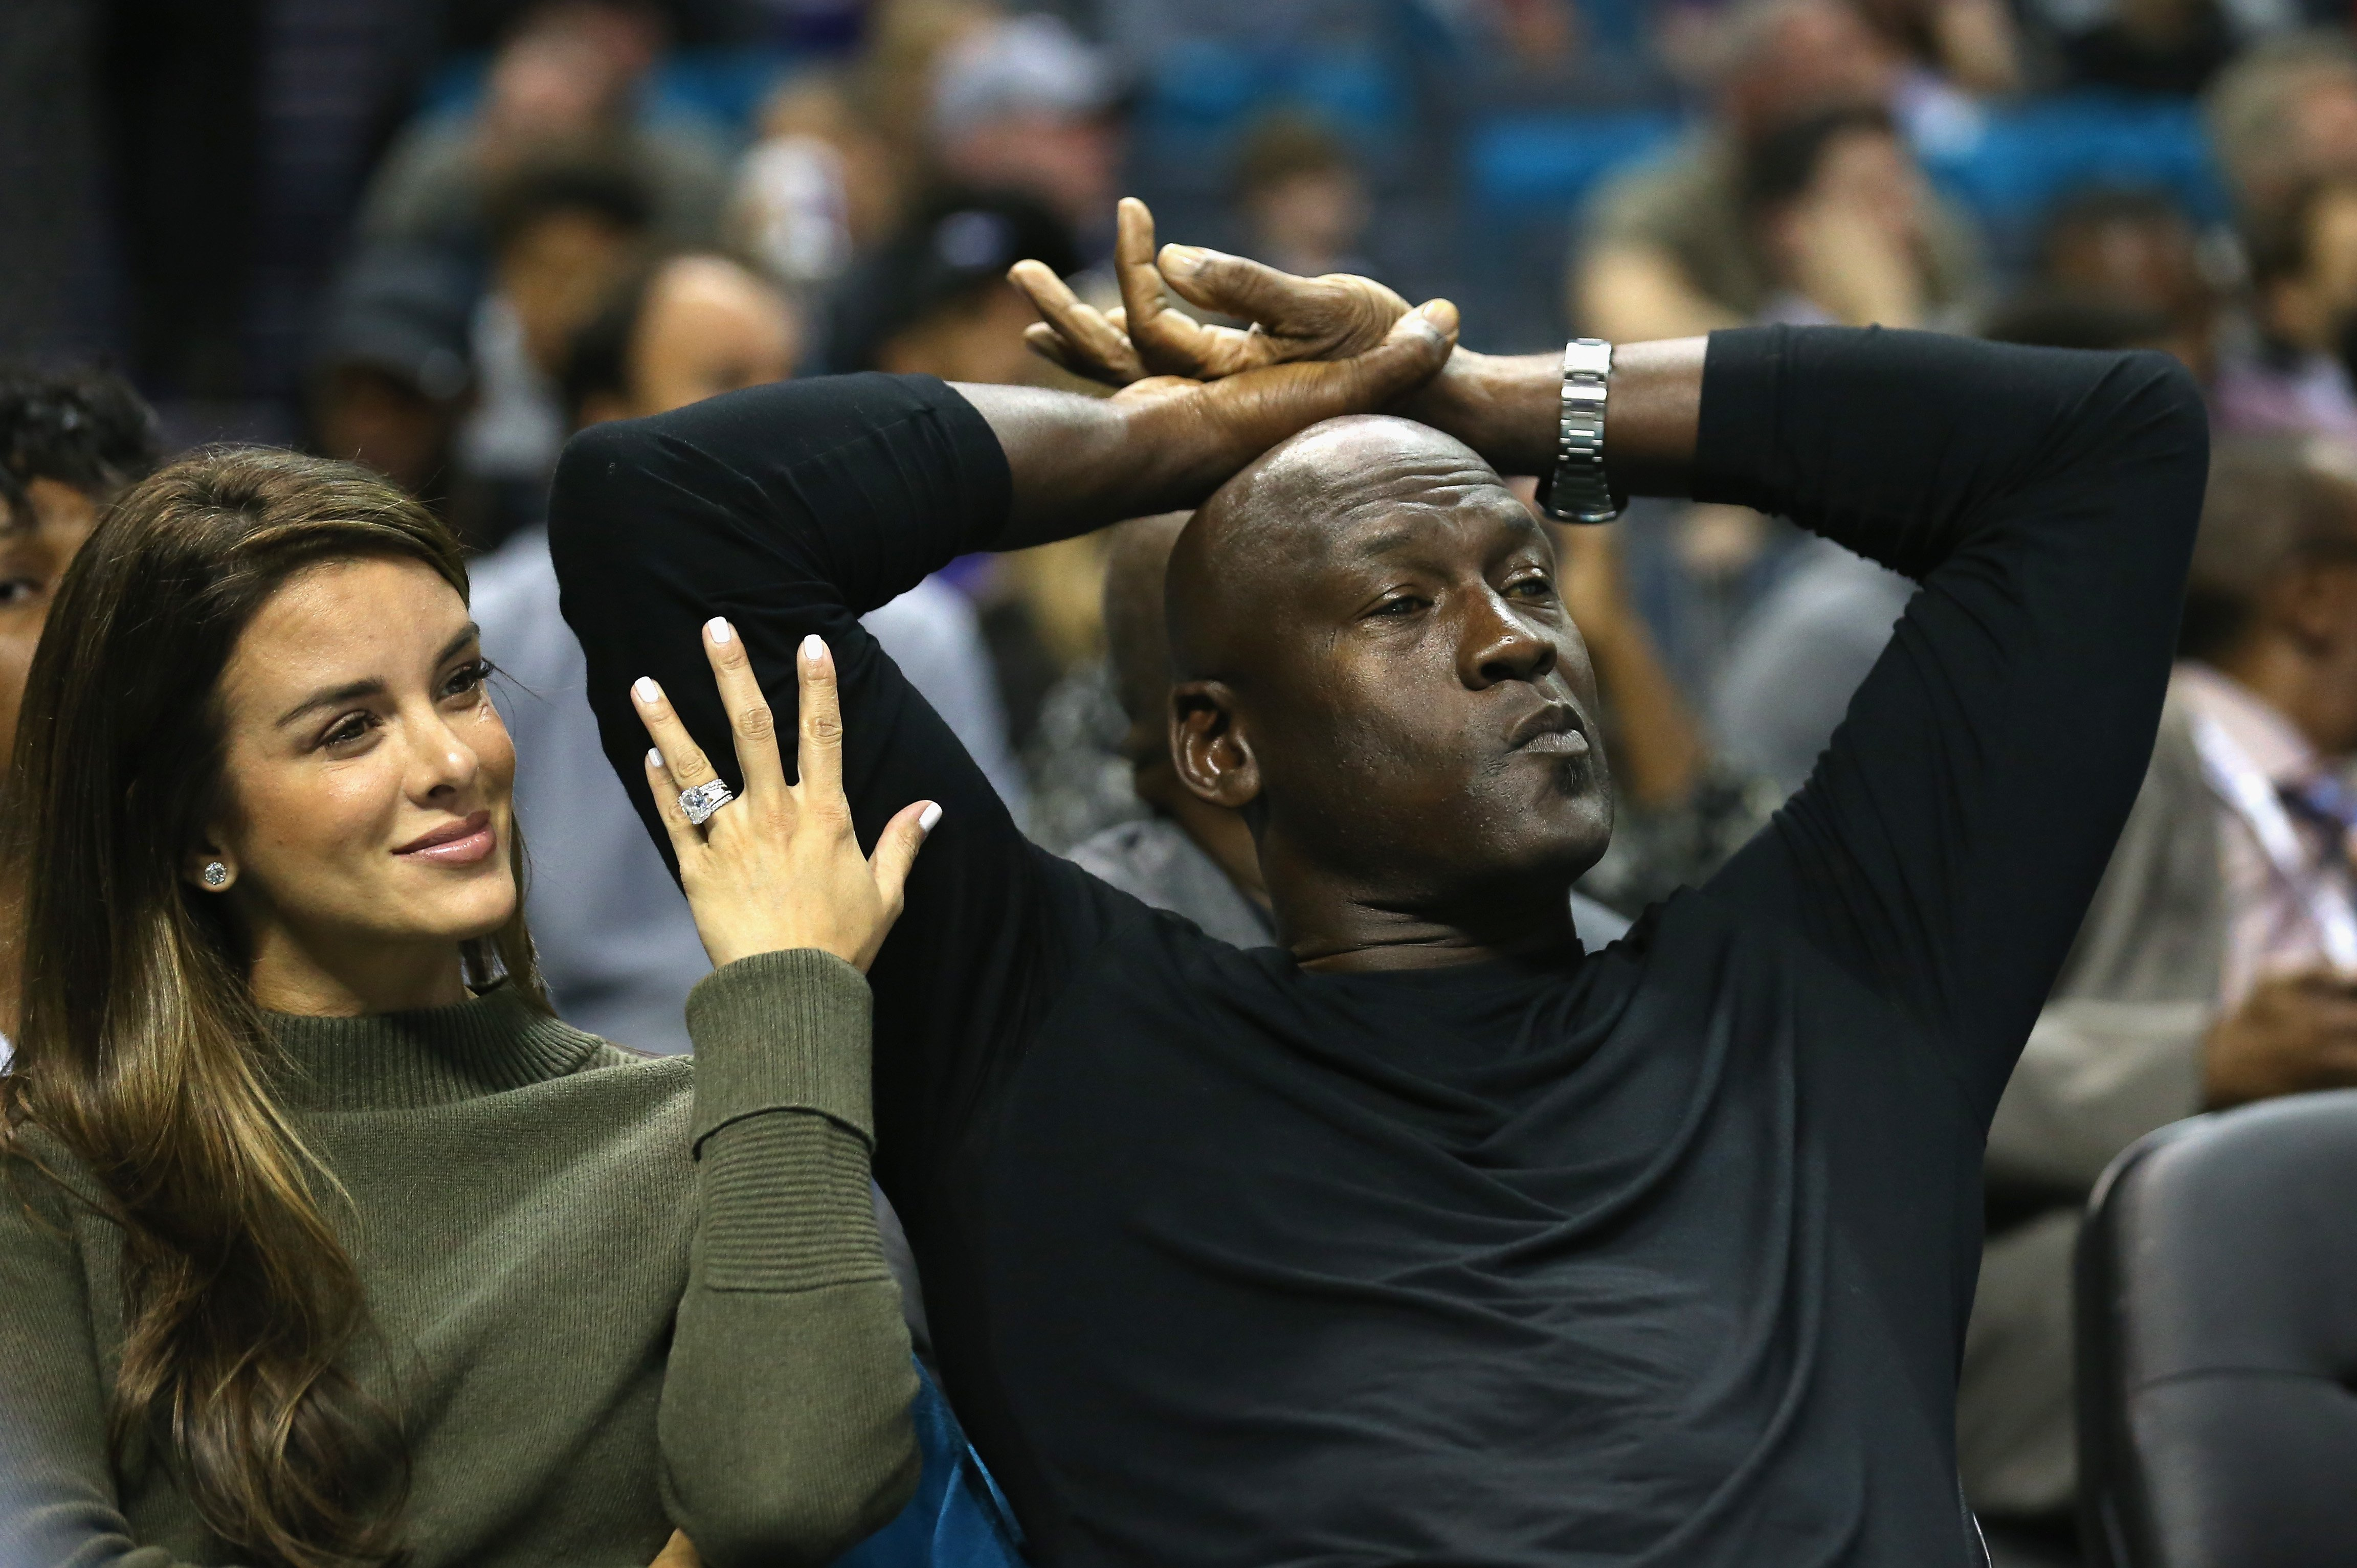 Yvette Prieto and her husband and owner of the Charlotte Hornets, Michael Jordan, watch on during their game against the Atlanta Hawks at Time Warner Cable Arena on November 1, 2015  | Photo: GettyImages